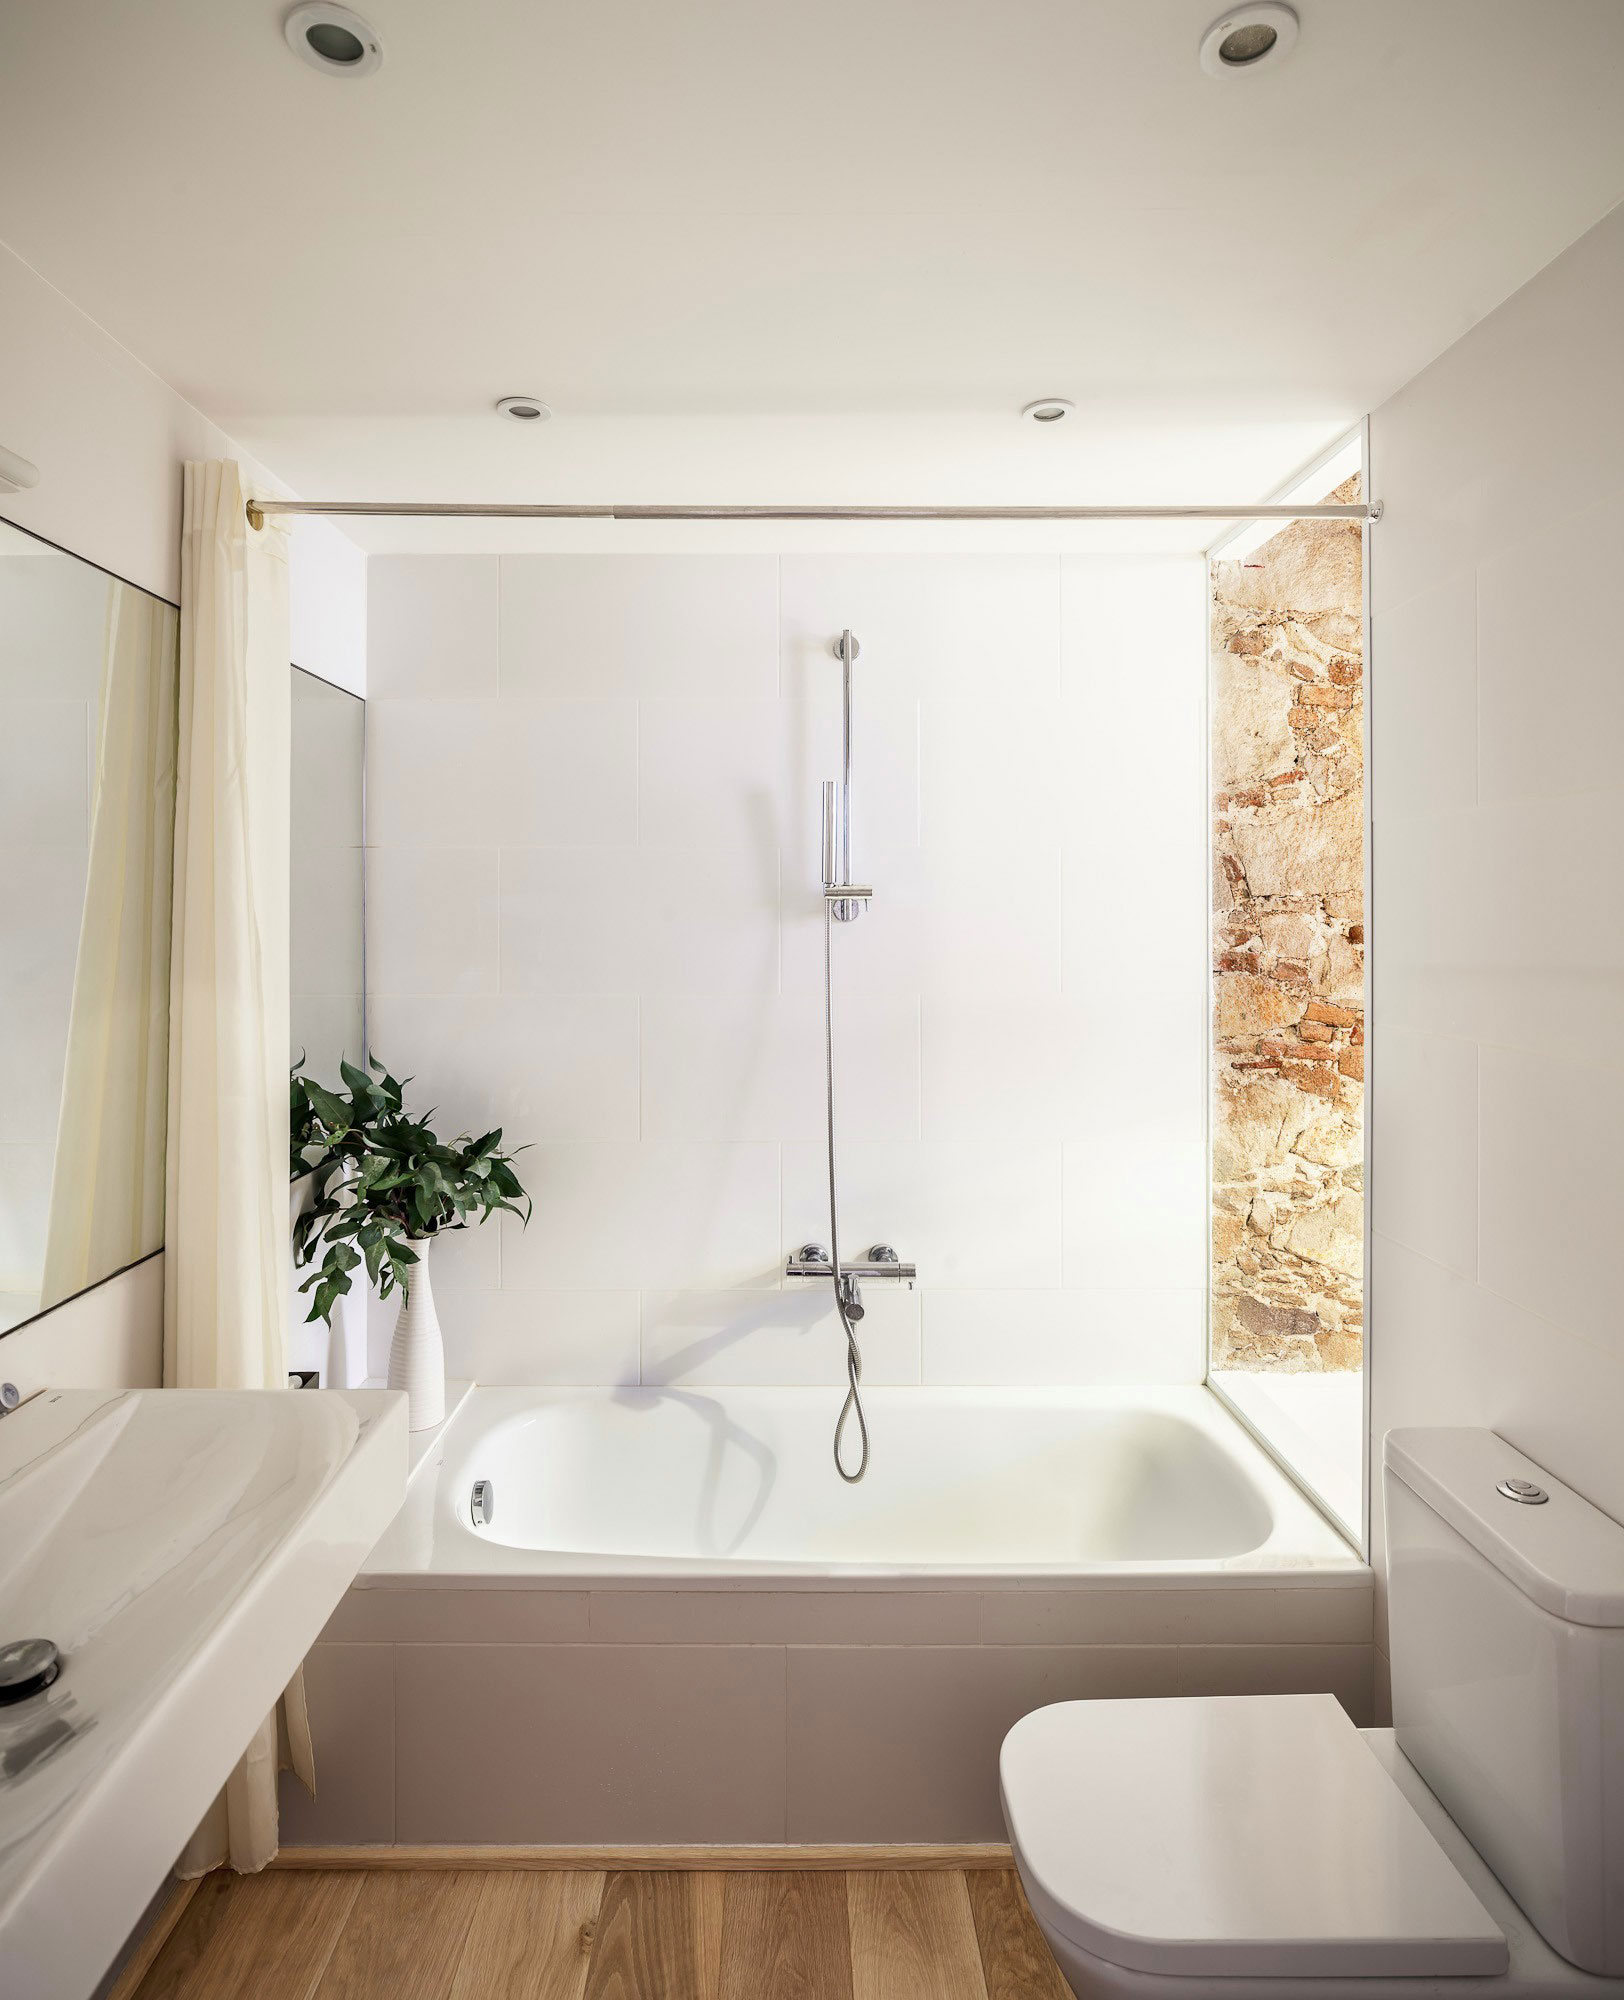 Renovation-Apartment-in-Les-Corts-bathroom